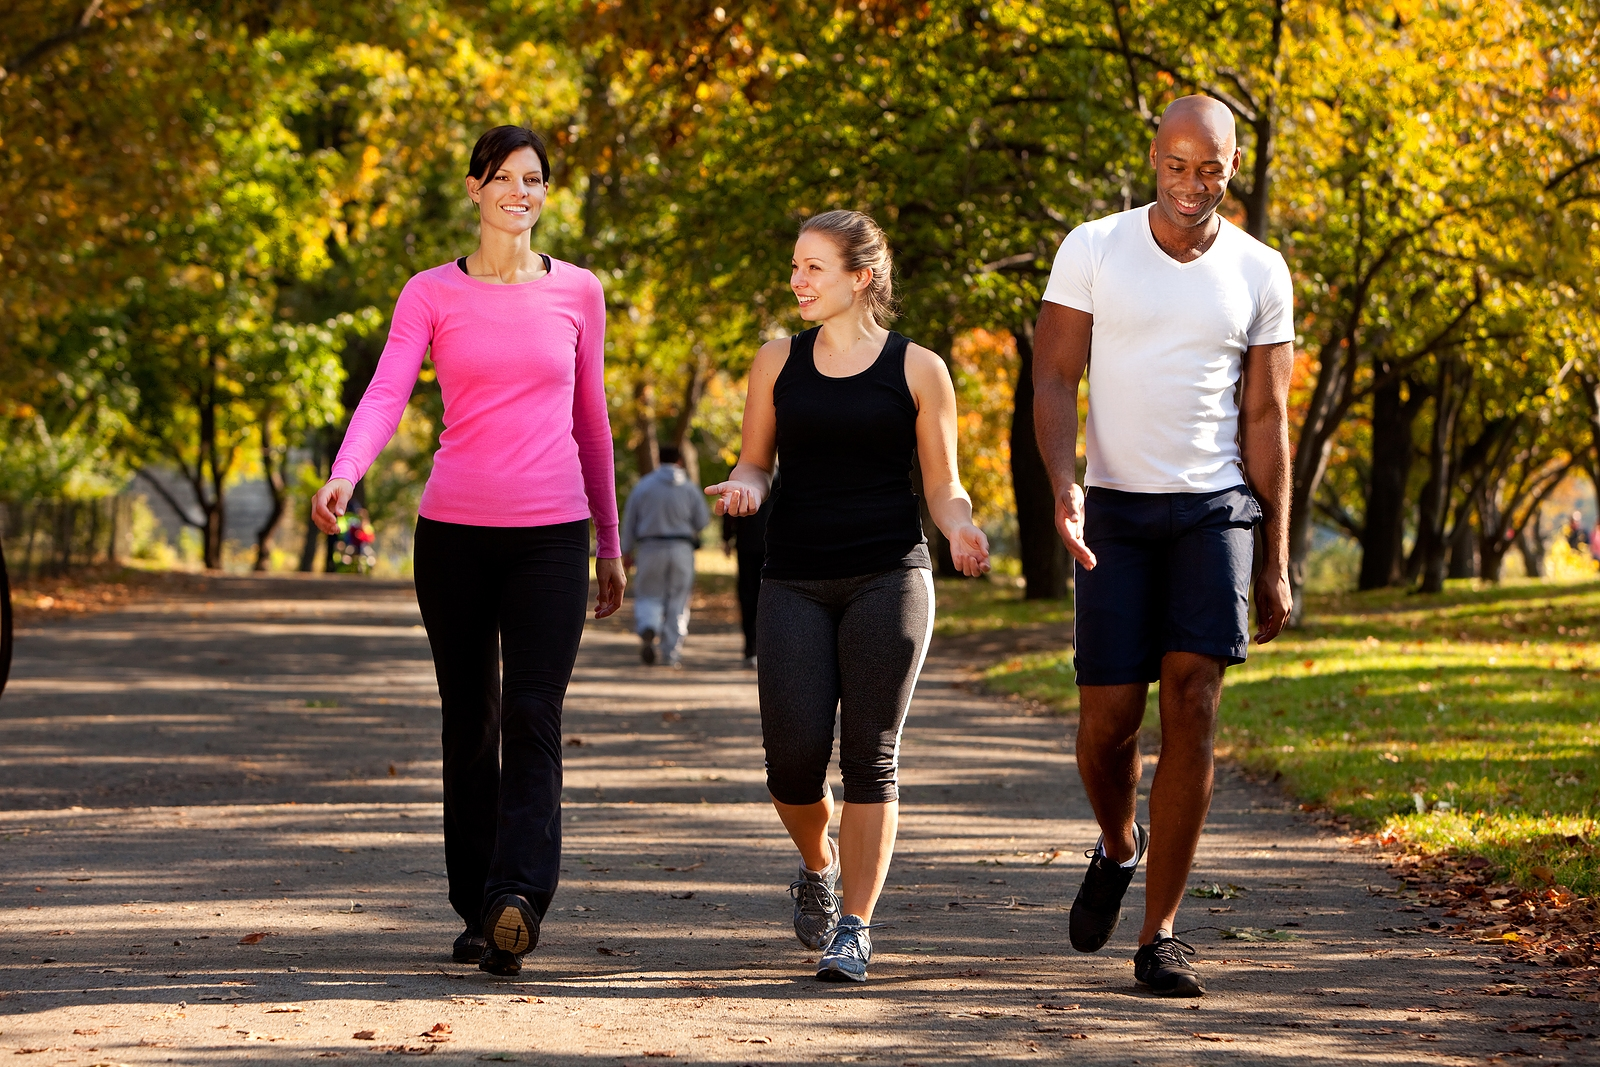 walk!! go for walks with your friends with close ones to you. do it to catch up to have fun to observe nature etc etc.  try to do it as constantly as you can. you will be losing weight without having to spend money or even hurt yourself